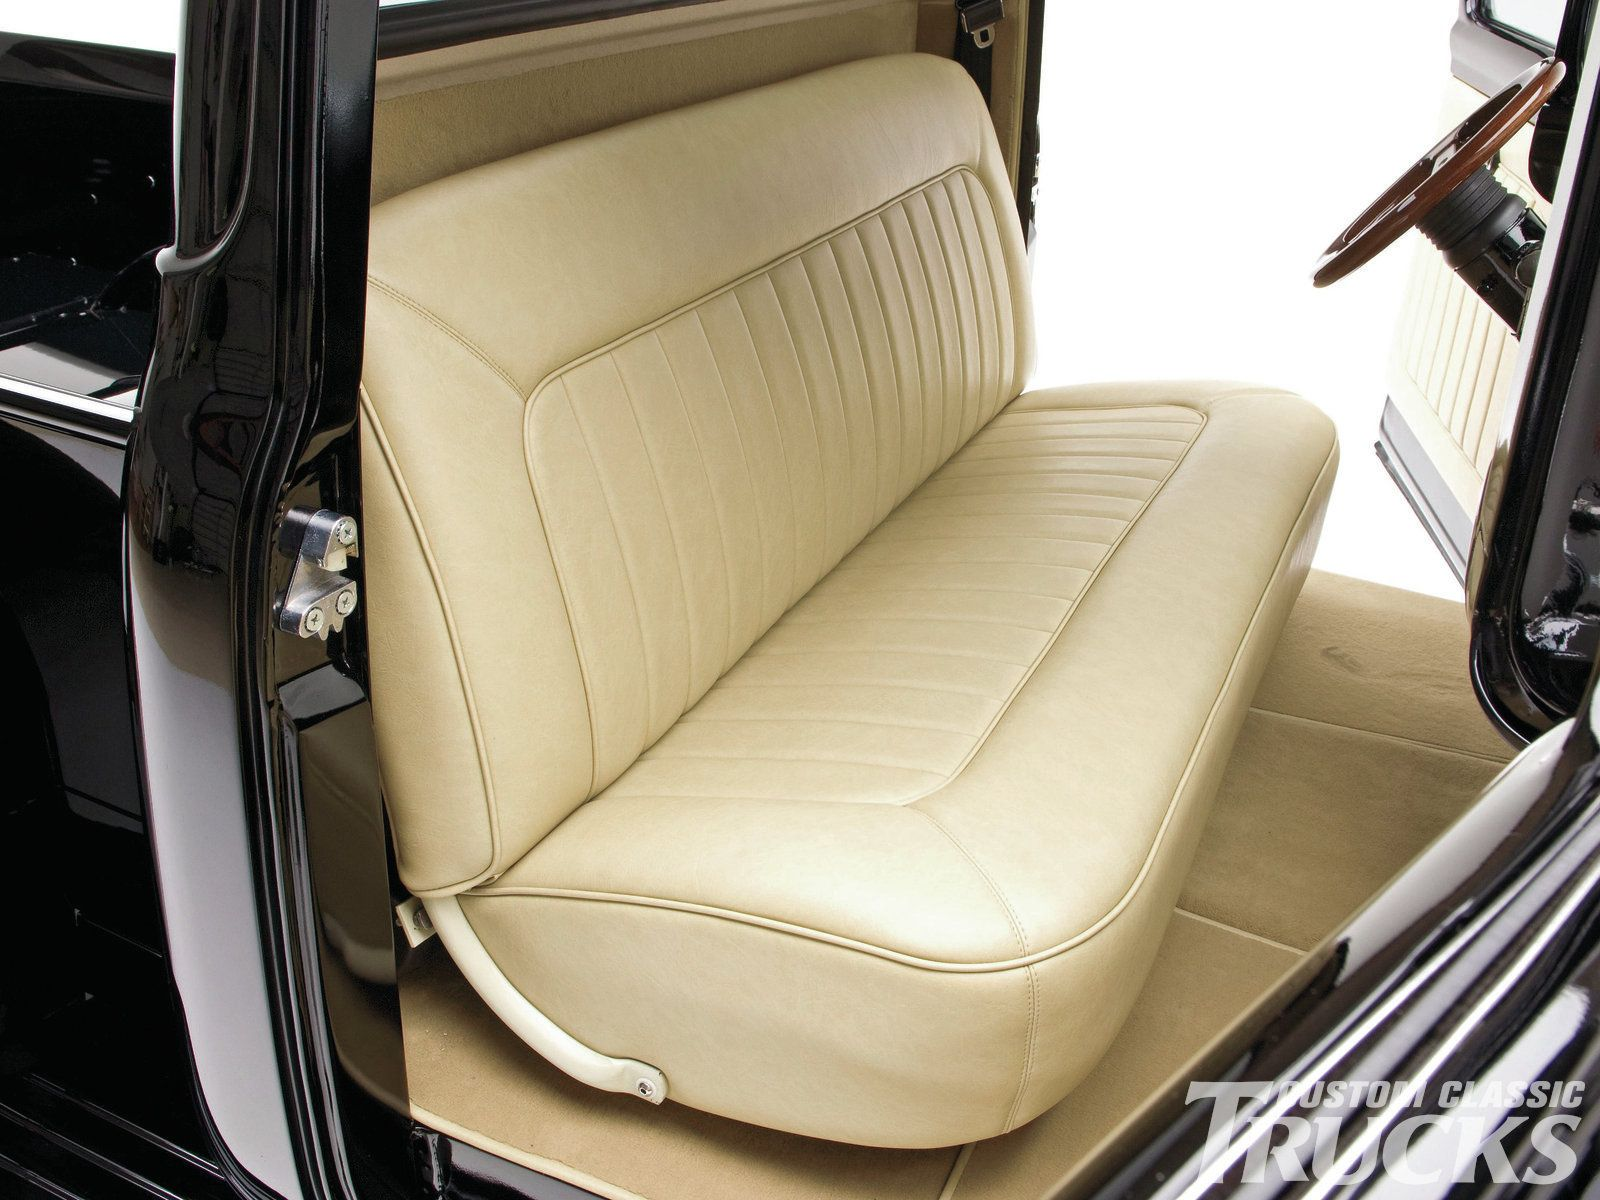 1956 Ford F-100 Truck - Hot Rod Network | Truck interior ...1956 Ford F100 Lifted